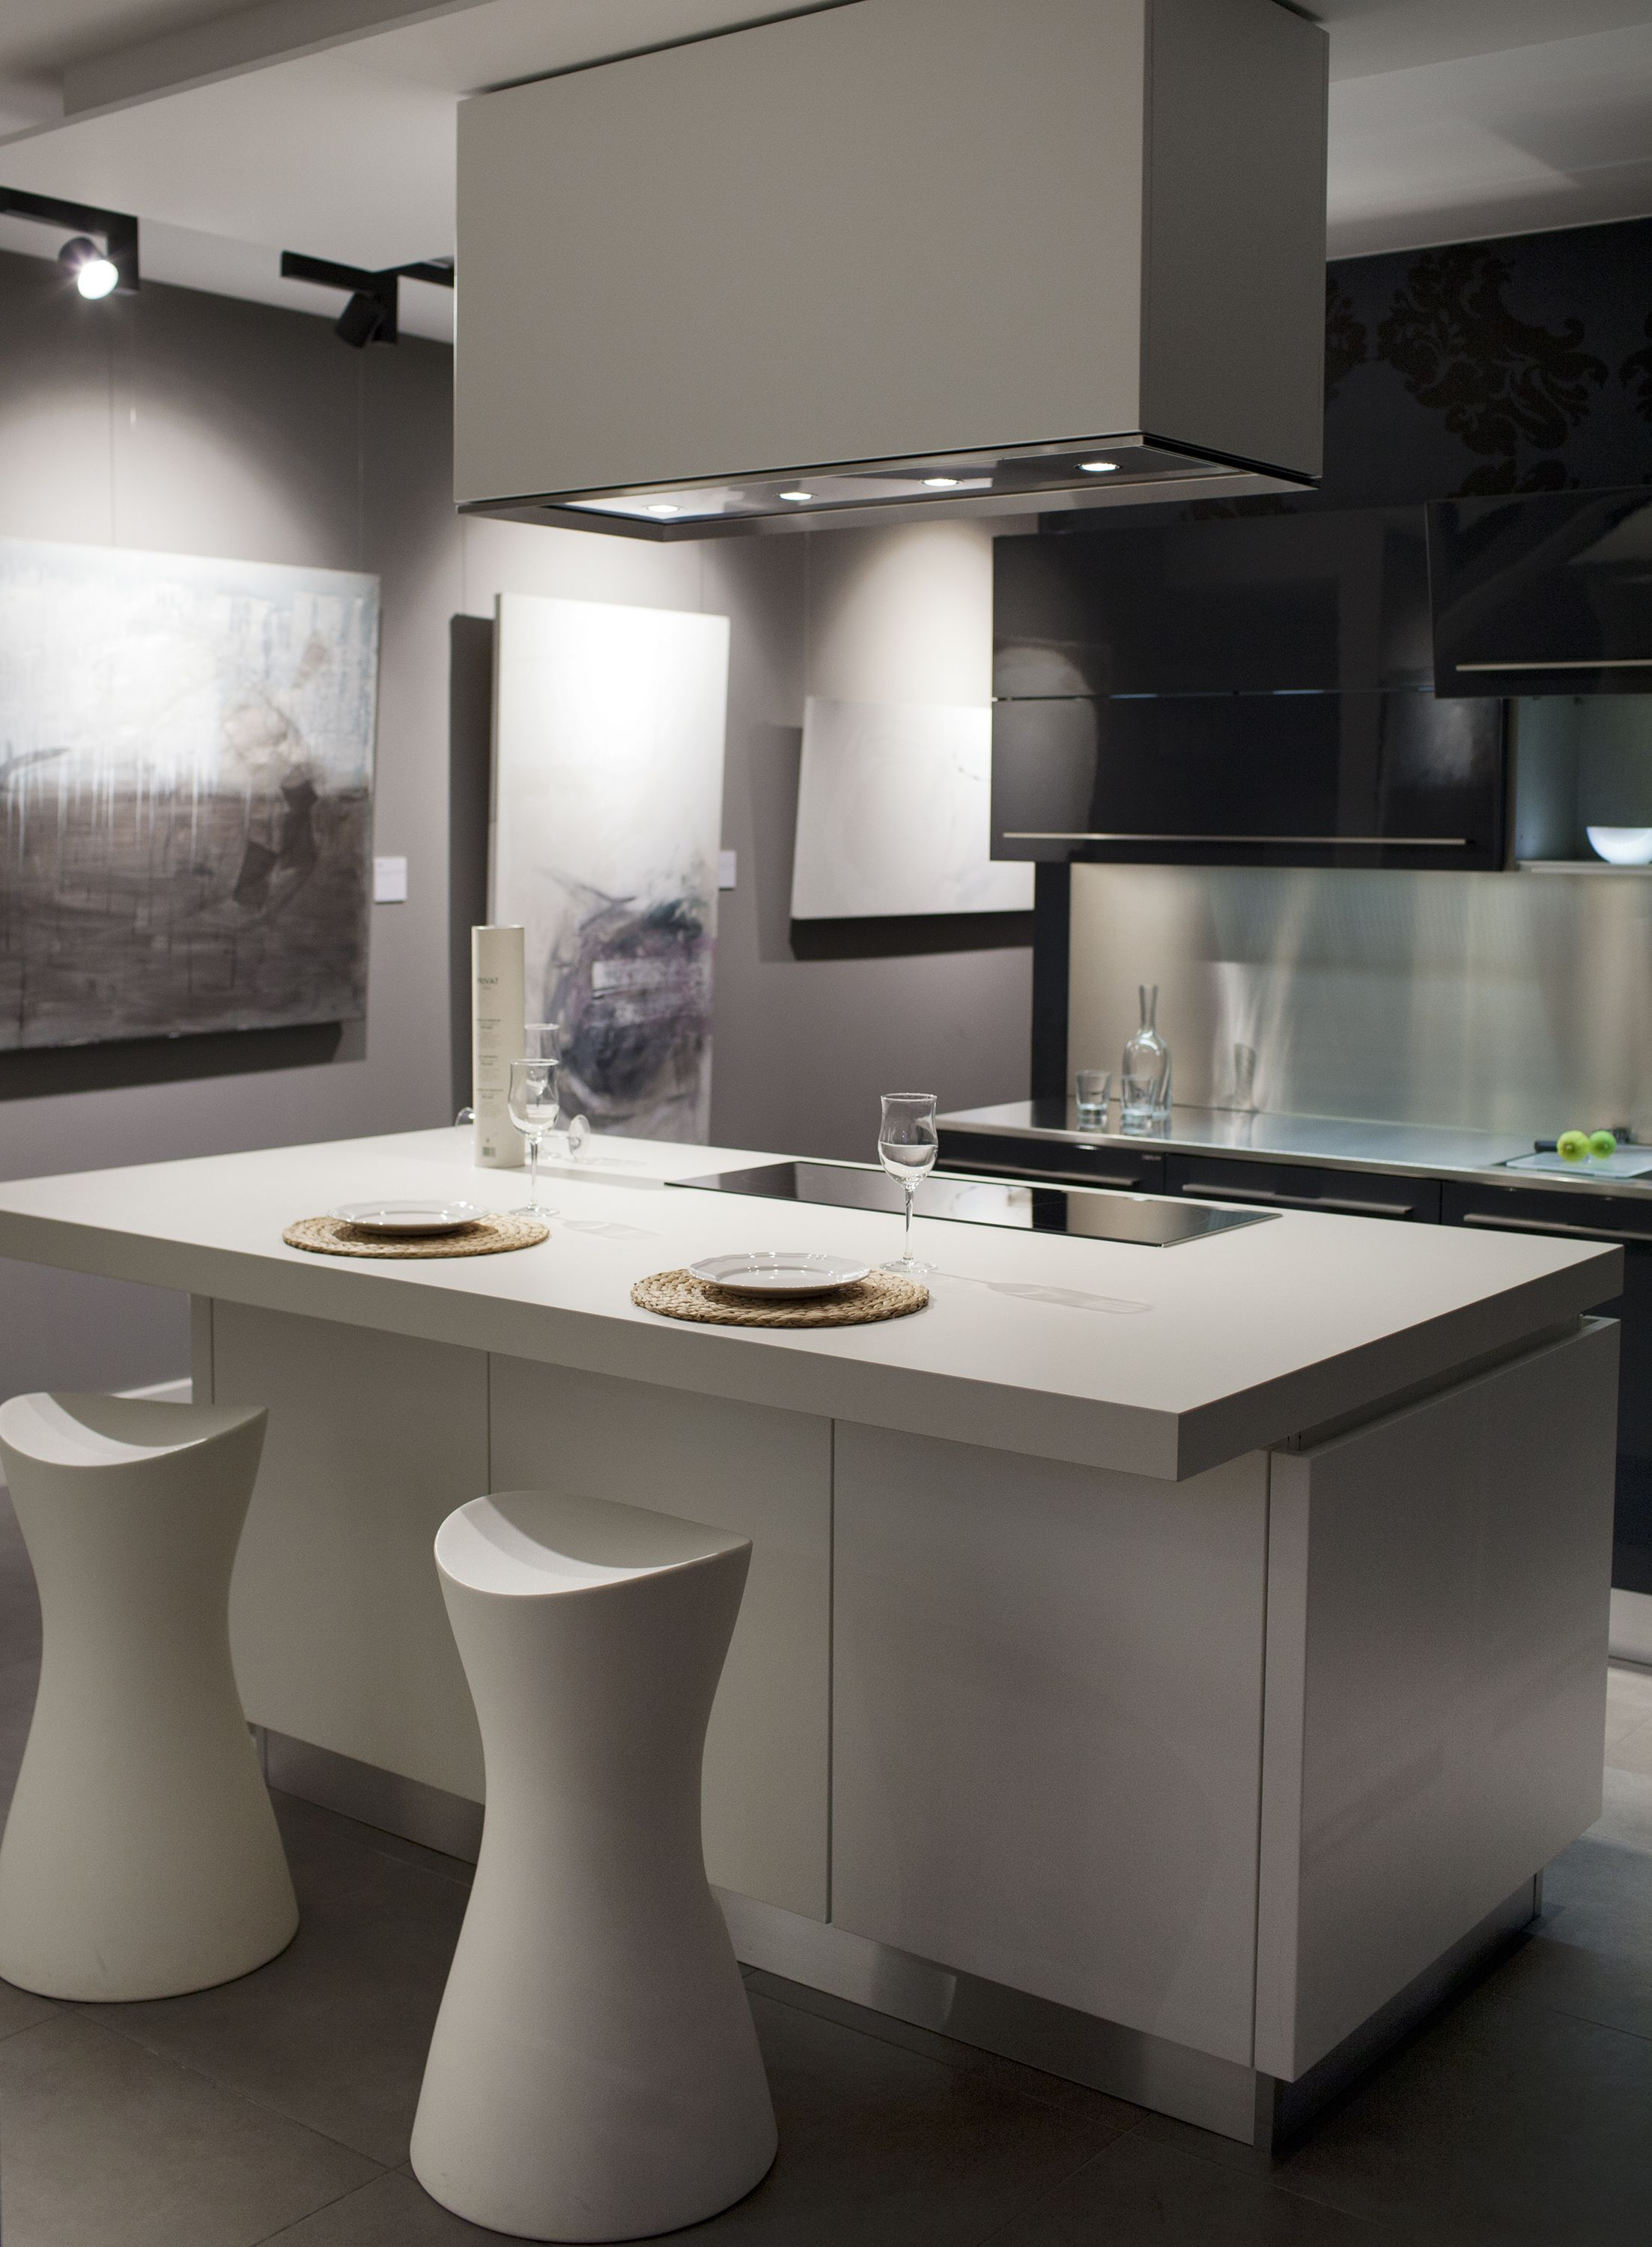 Welcome To CDK Stoneu0027s Neolith Gallery. Kitchen Bench Tops And Splash  Backs, Bathroom Vanities, Wall Floors, Tiles, Slabs And More.